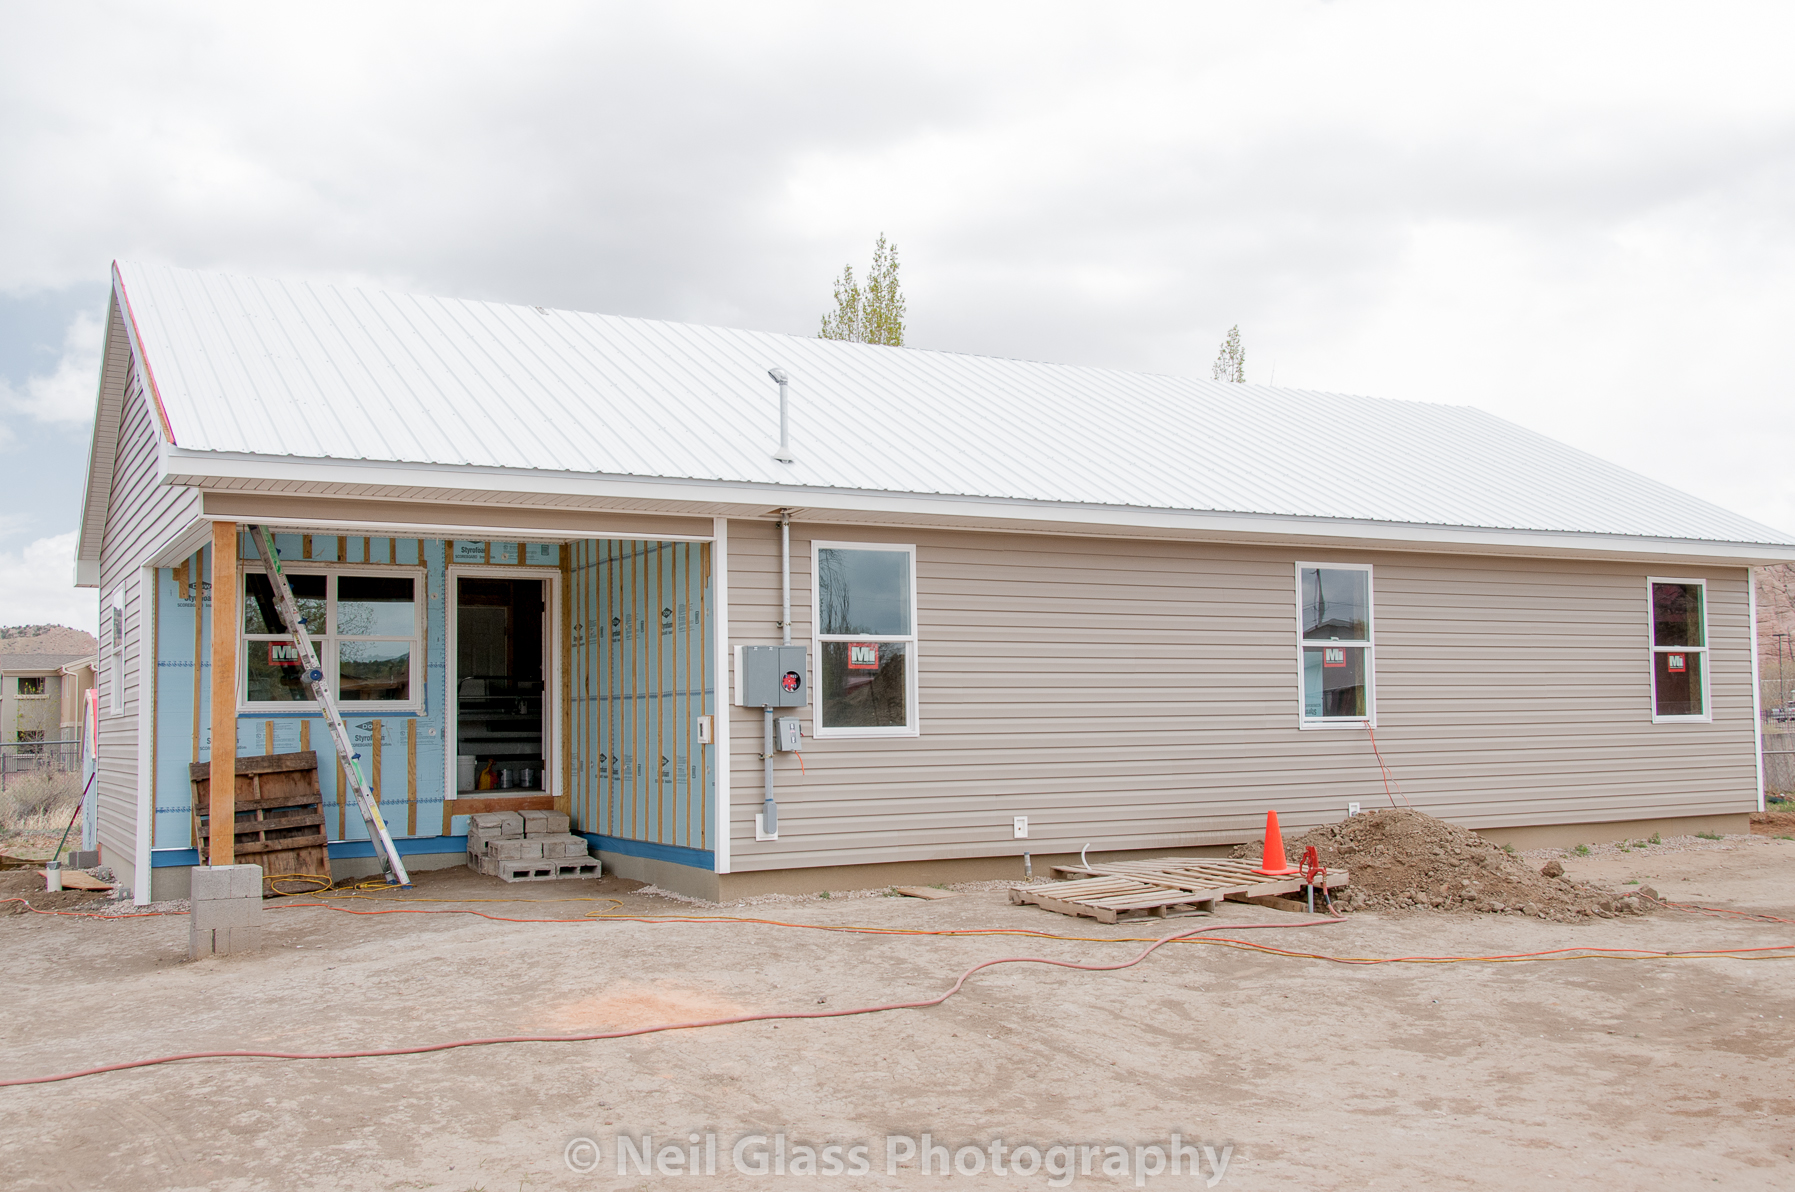 House 5 update may 19 habitat for humanity of gallup for Updating your house